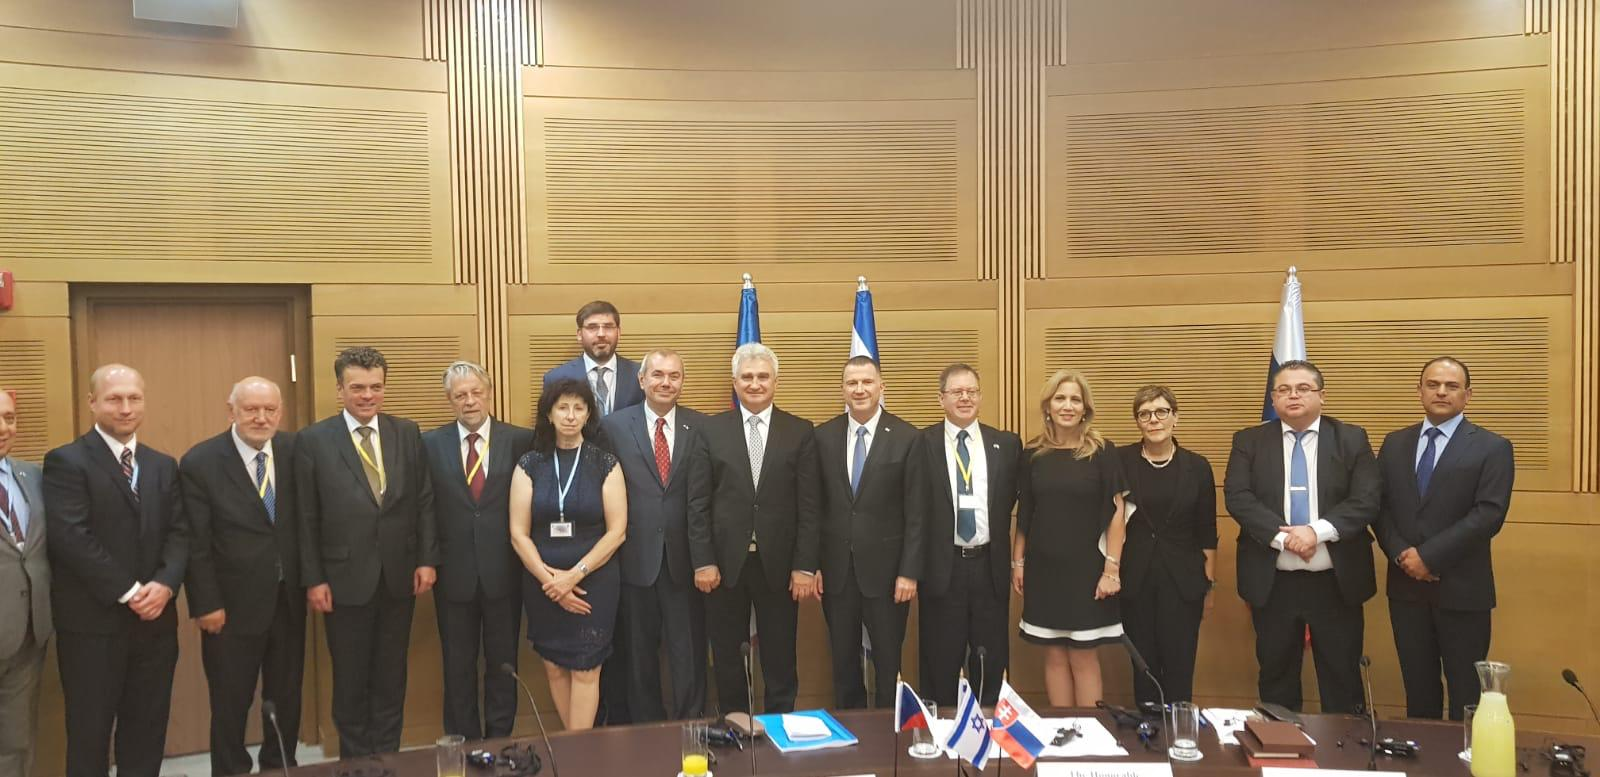 czech republic relationship with israel